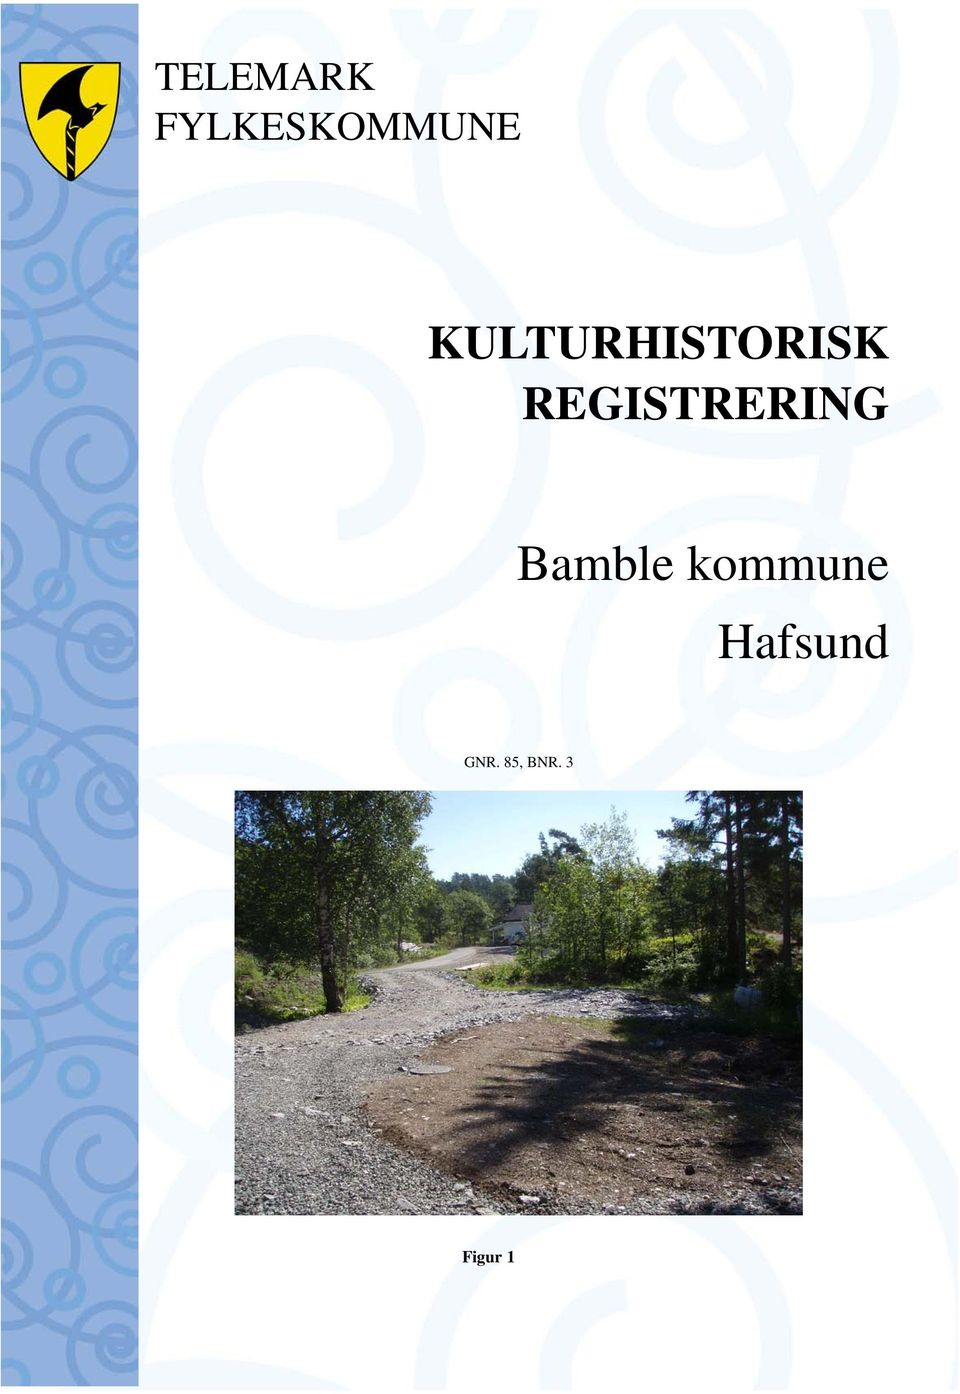 REGISTRERING Bamble